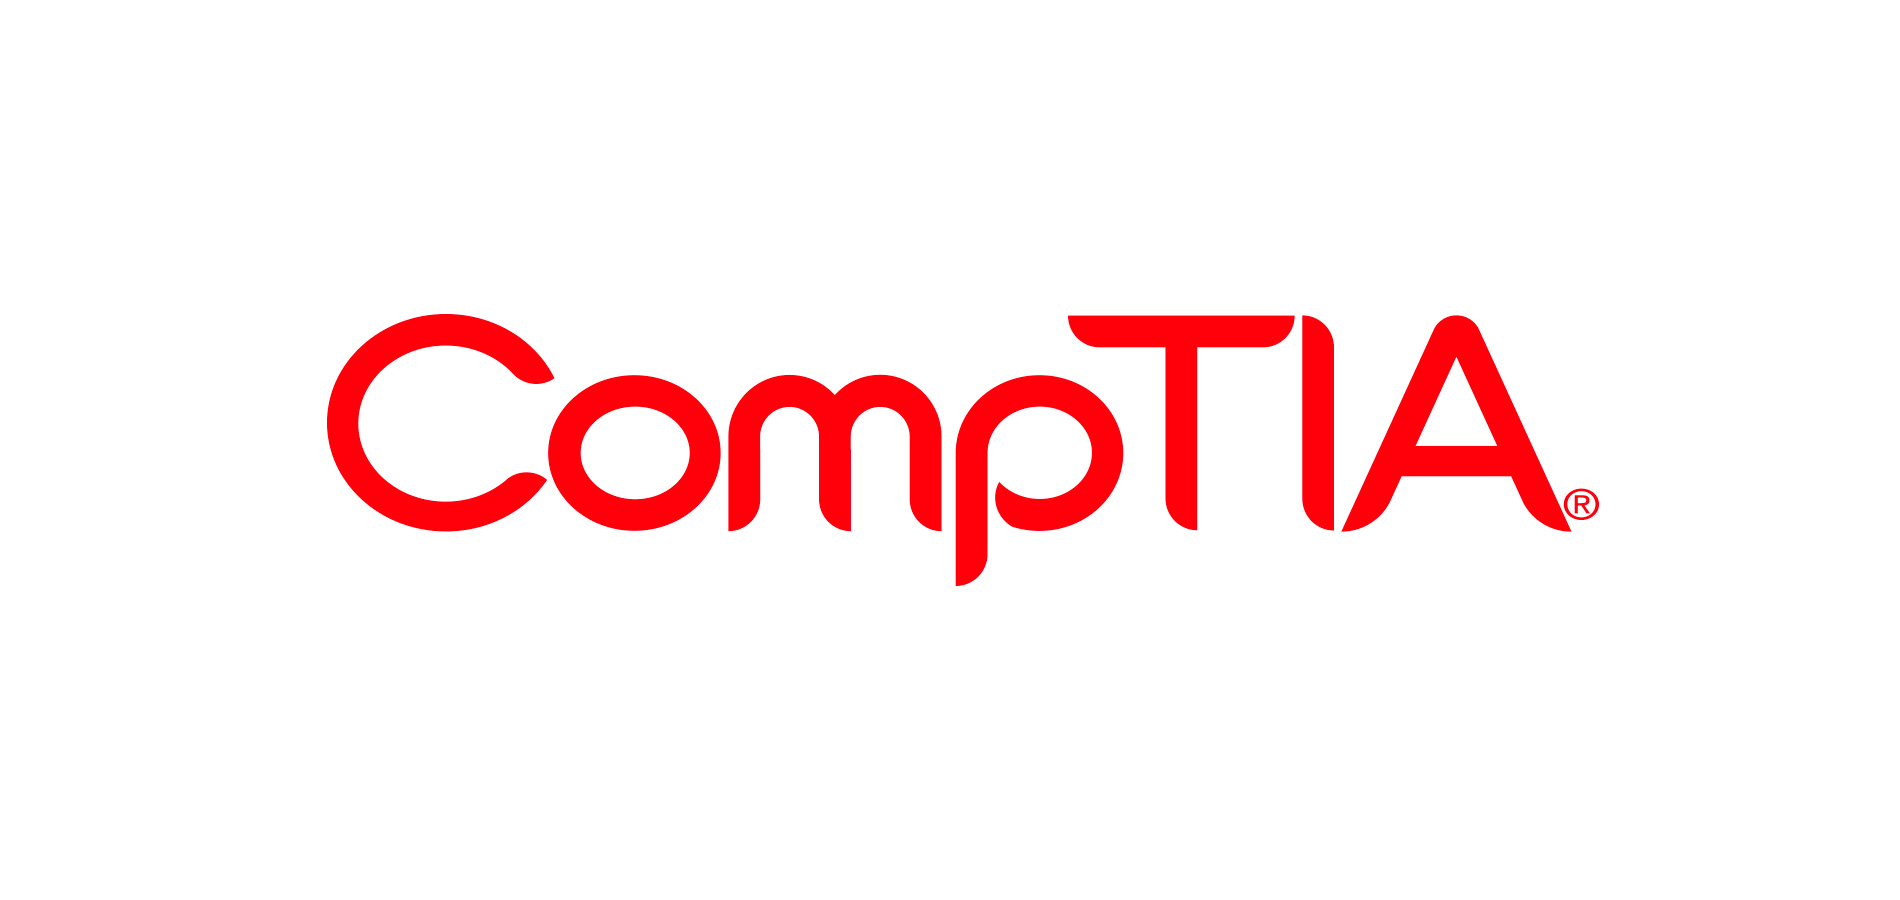 5 reasons CompTIA will help a career in IT